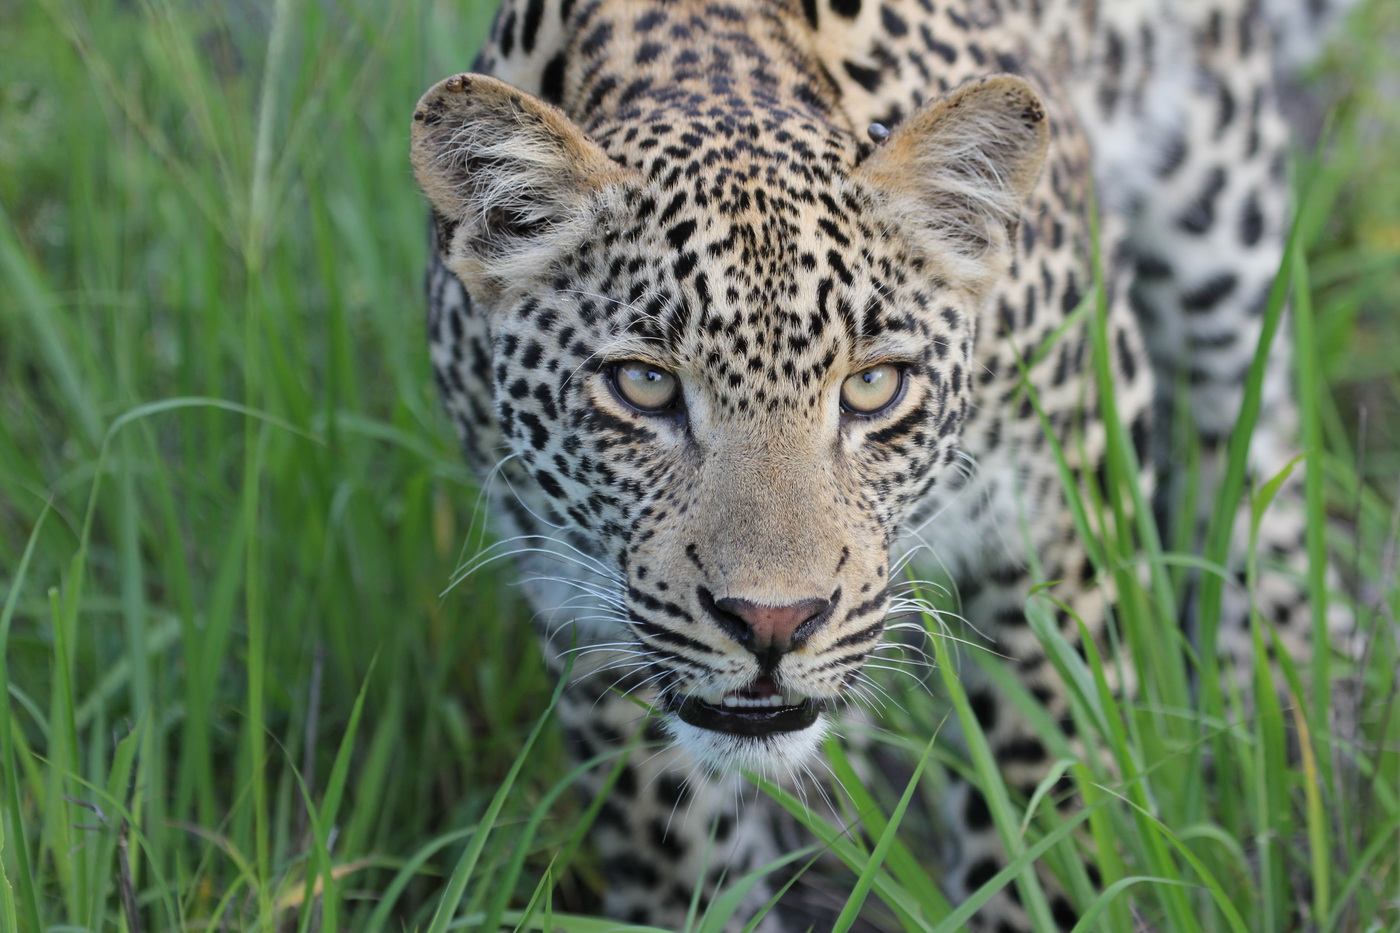 Up close with an African Leopard